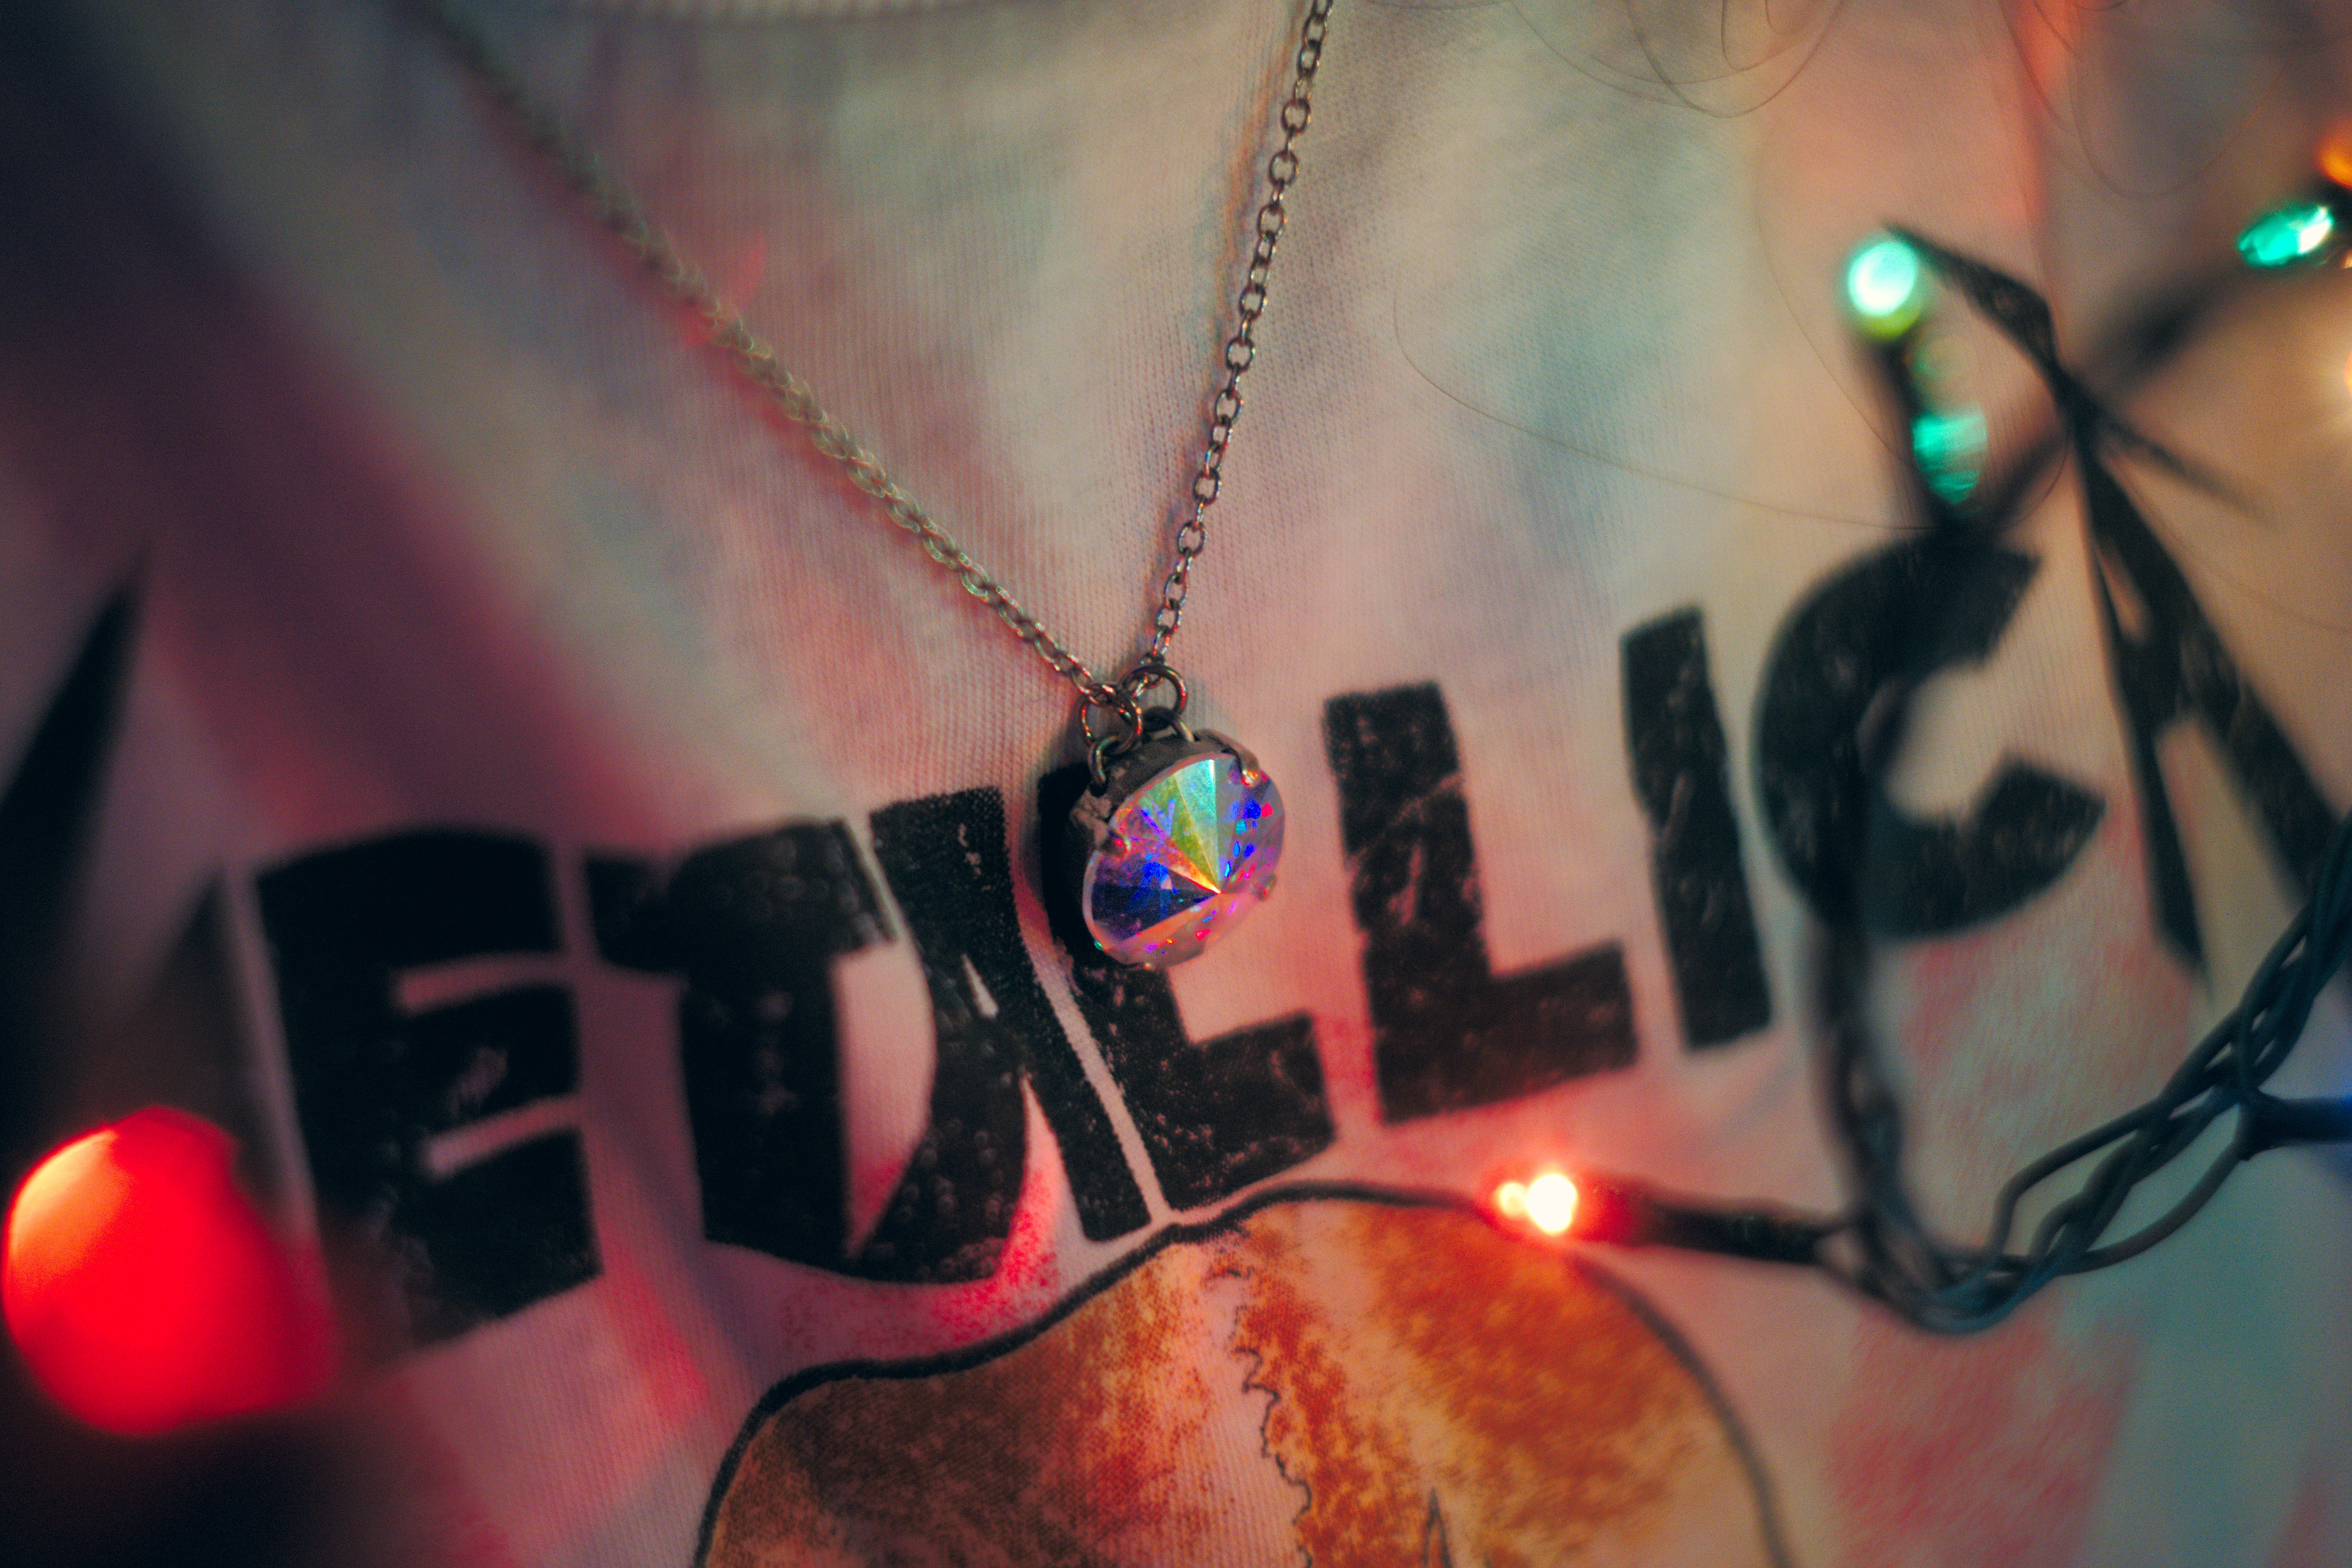 Metallica-prinetd shirt and iridescent pendant necklace